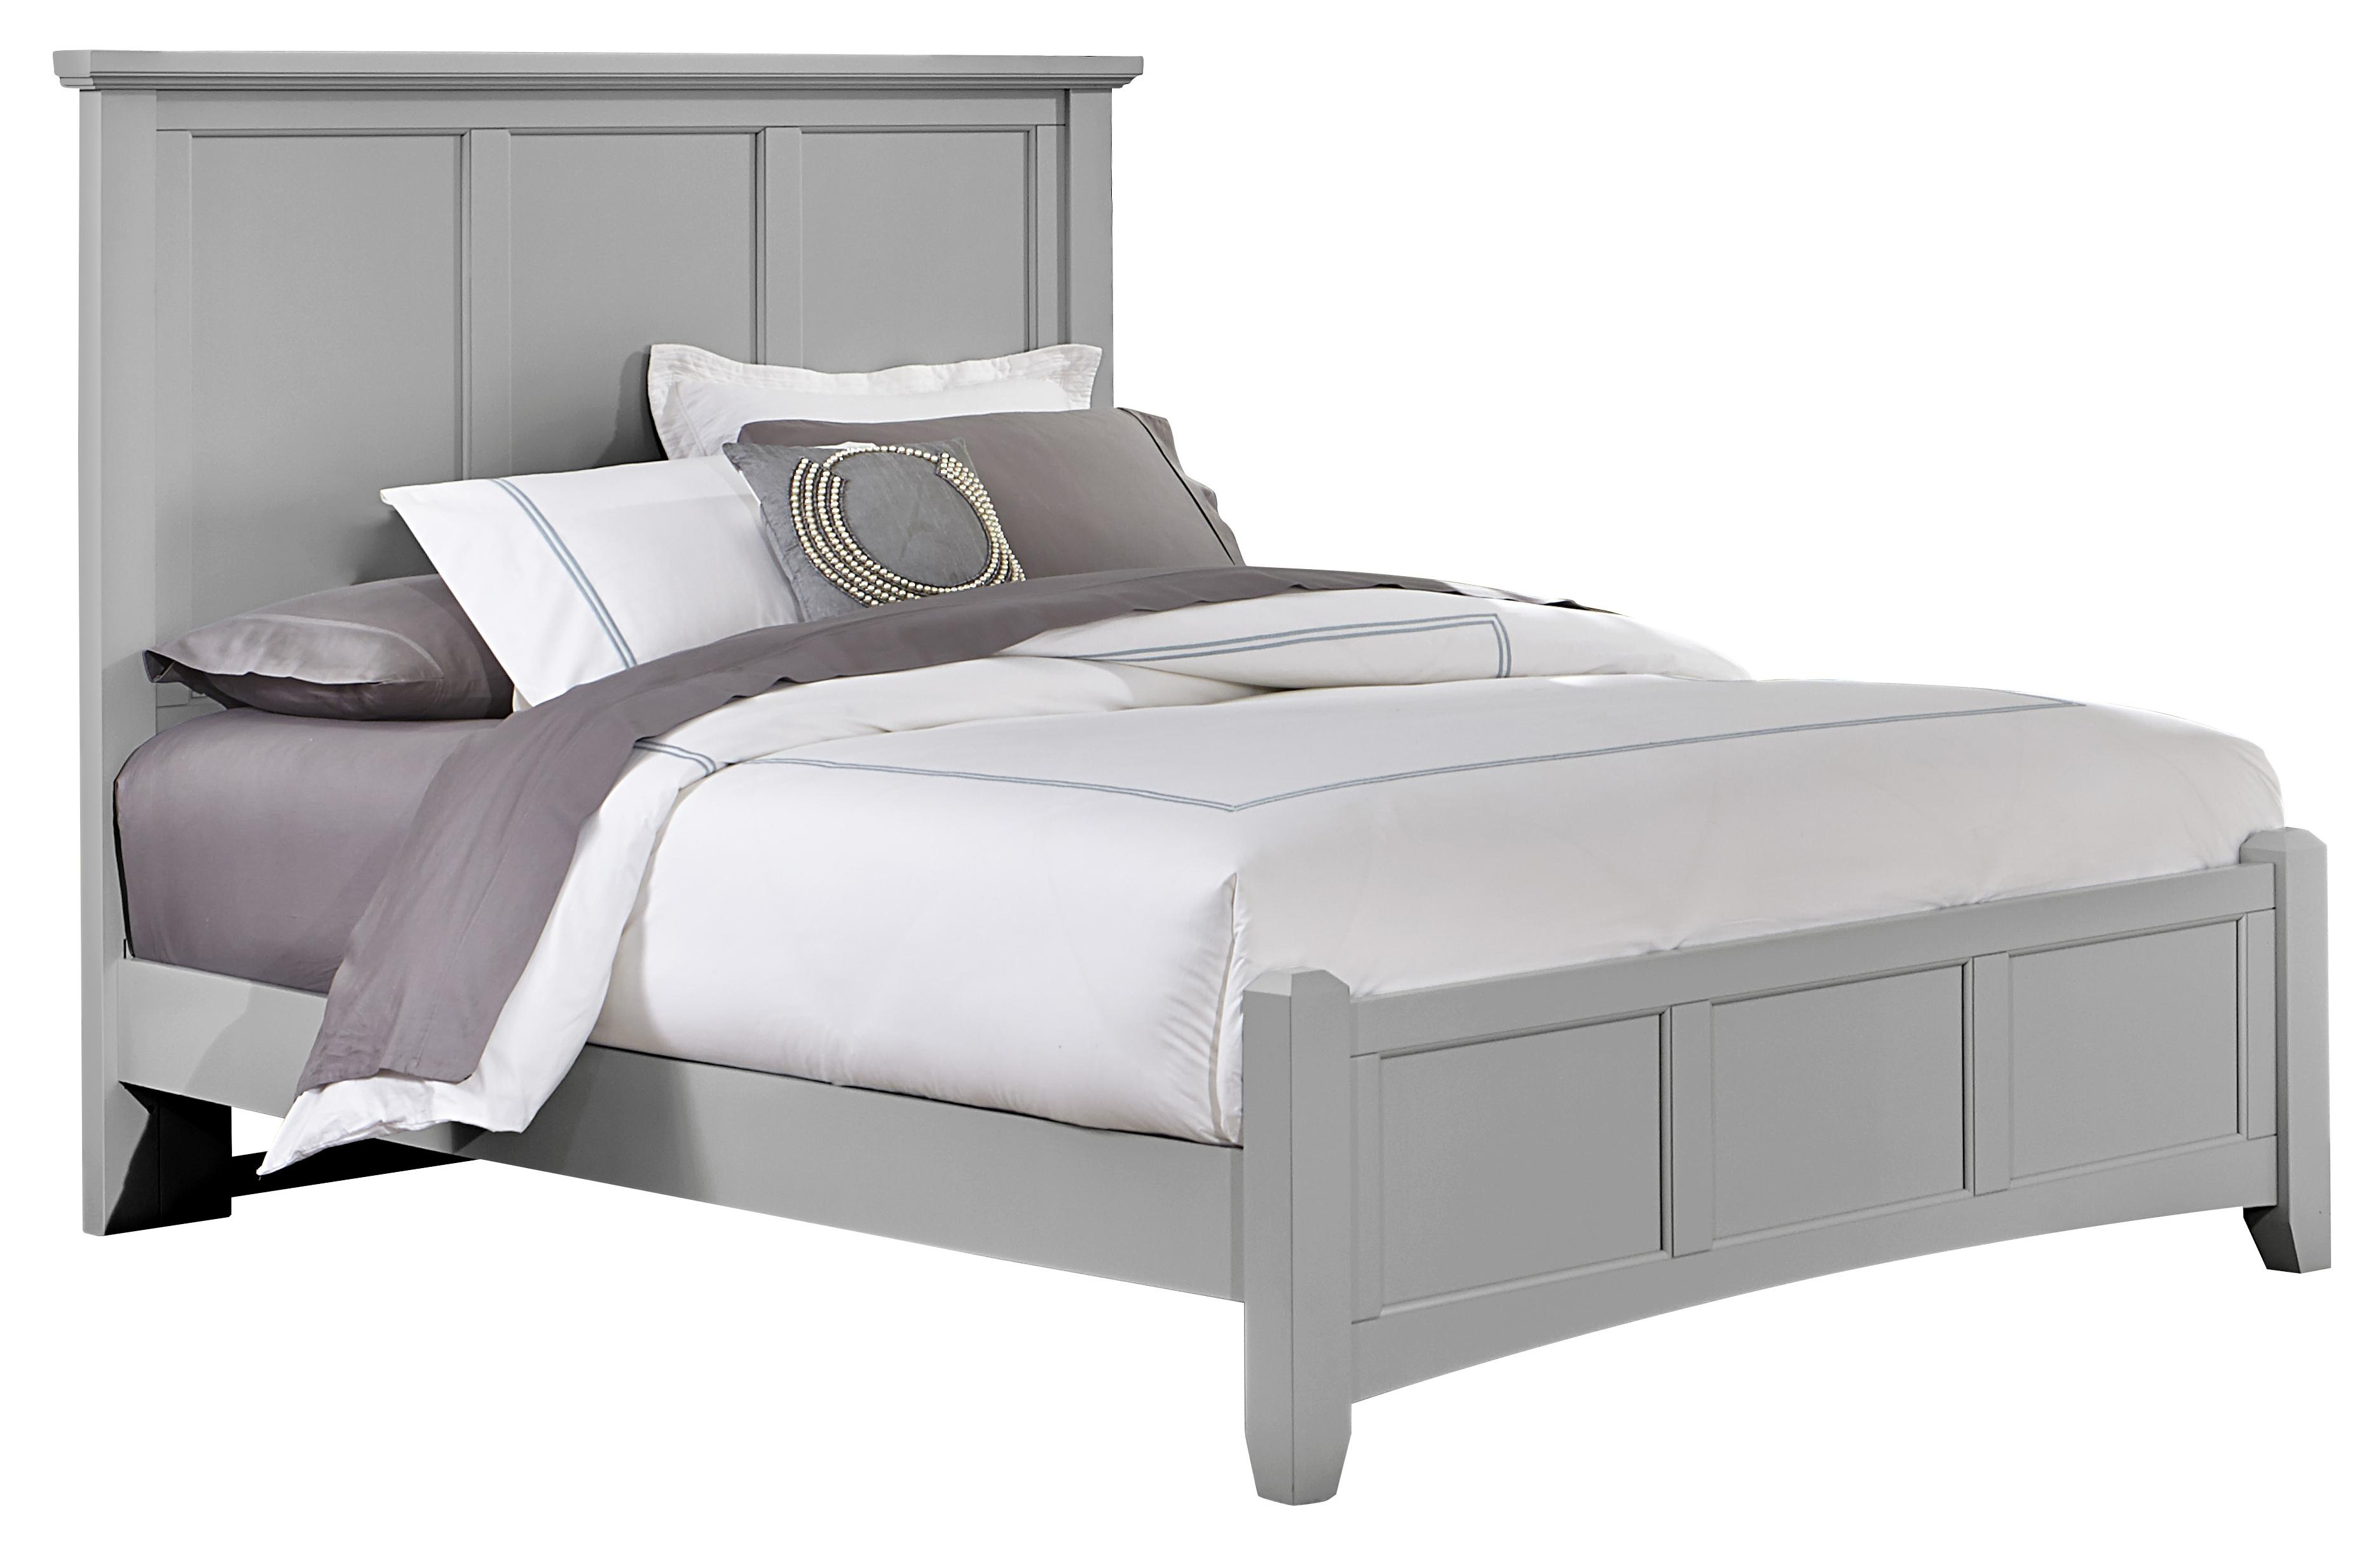 Bunkhouse Full Mansion Bed by Vaughan-Bassett at Crowley Furniture & Mattress